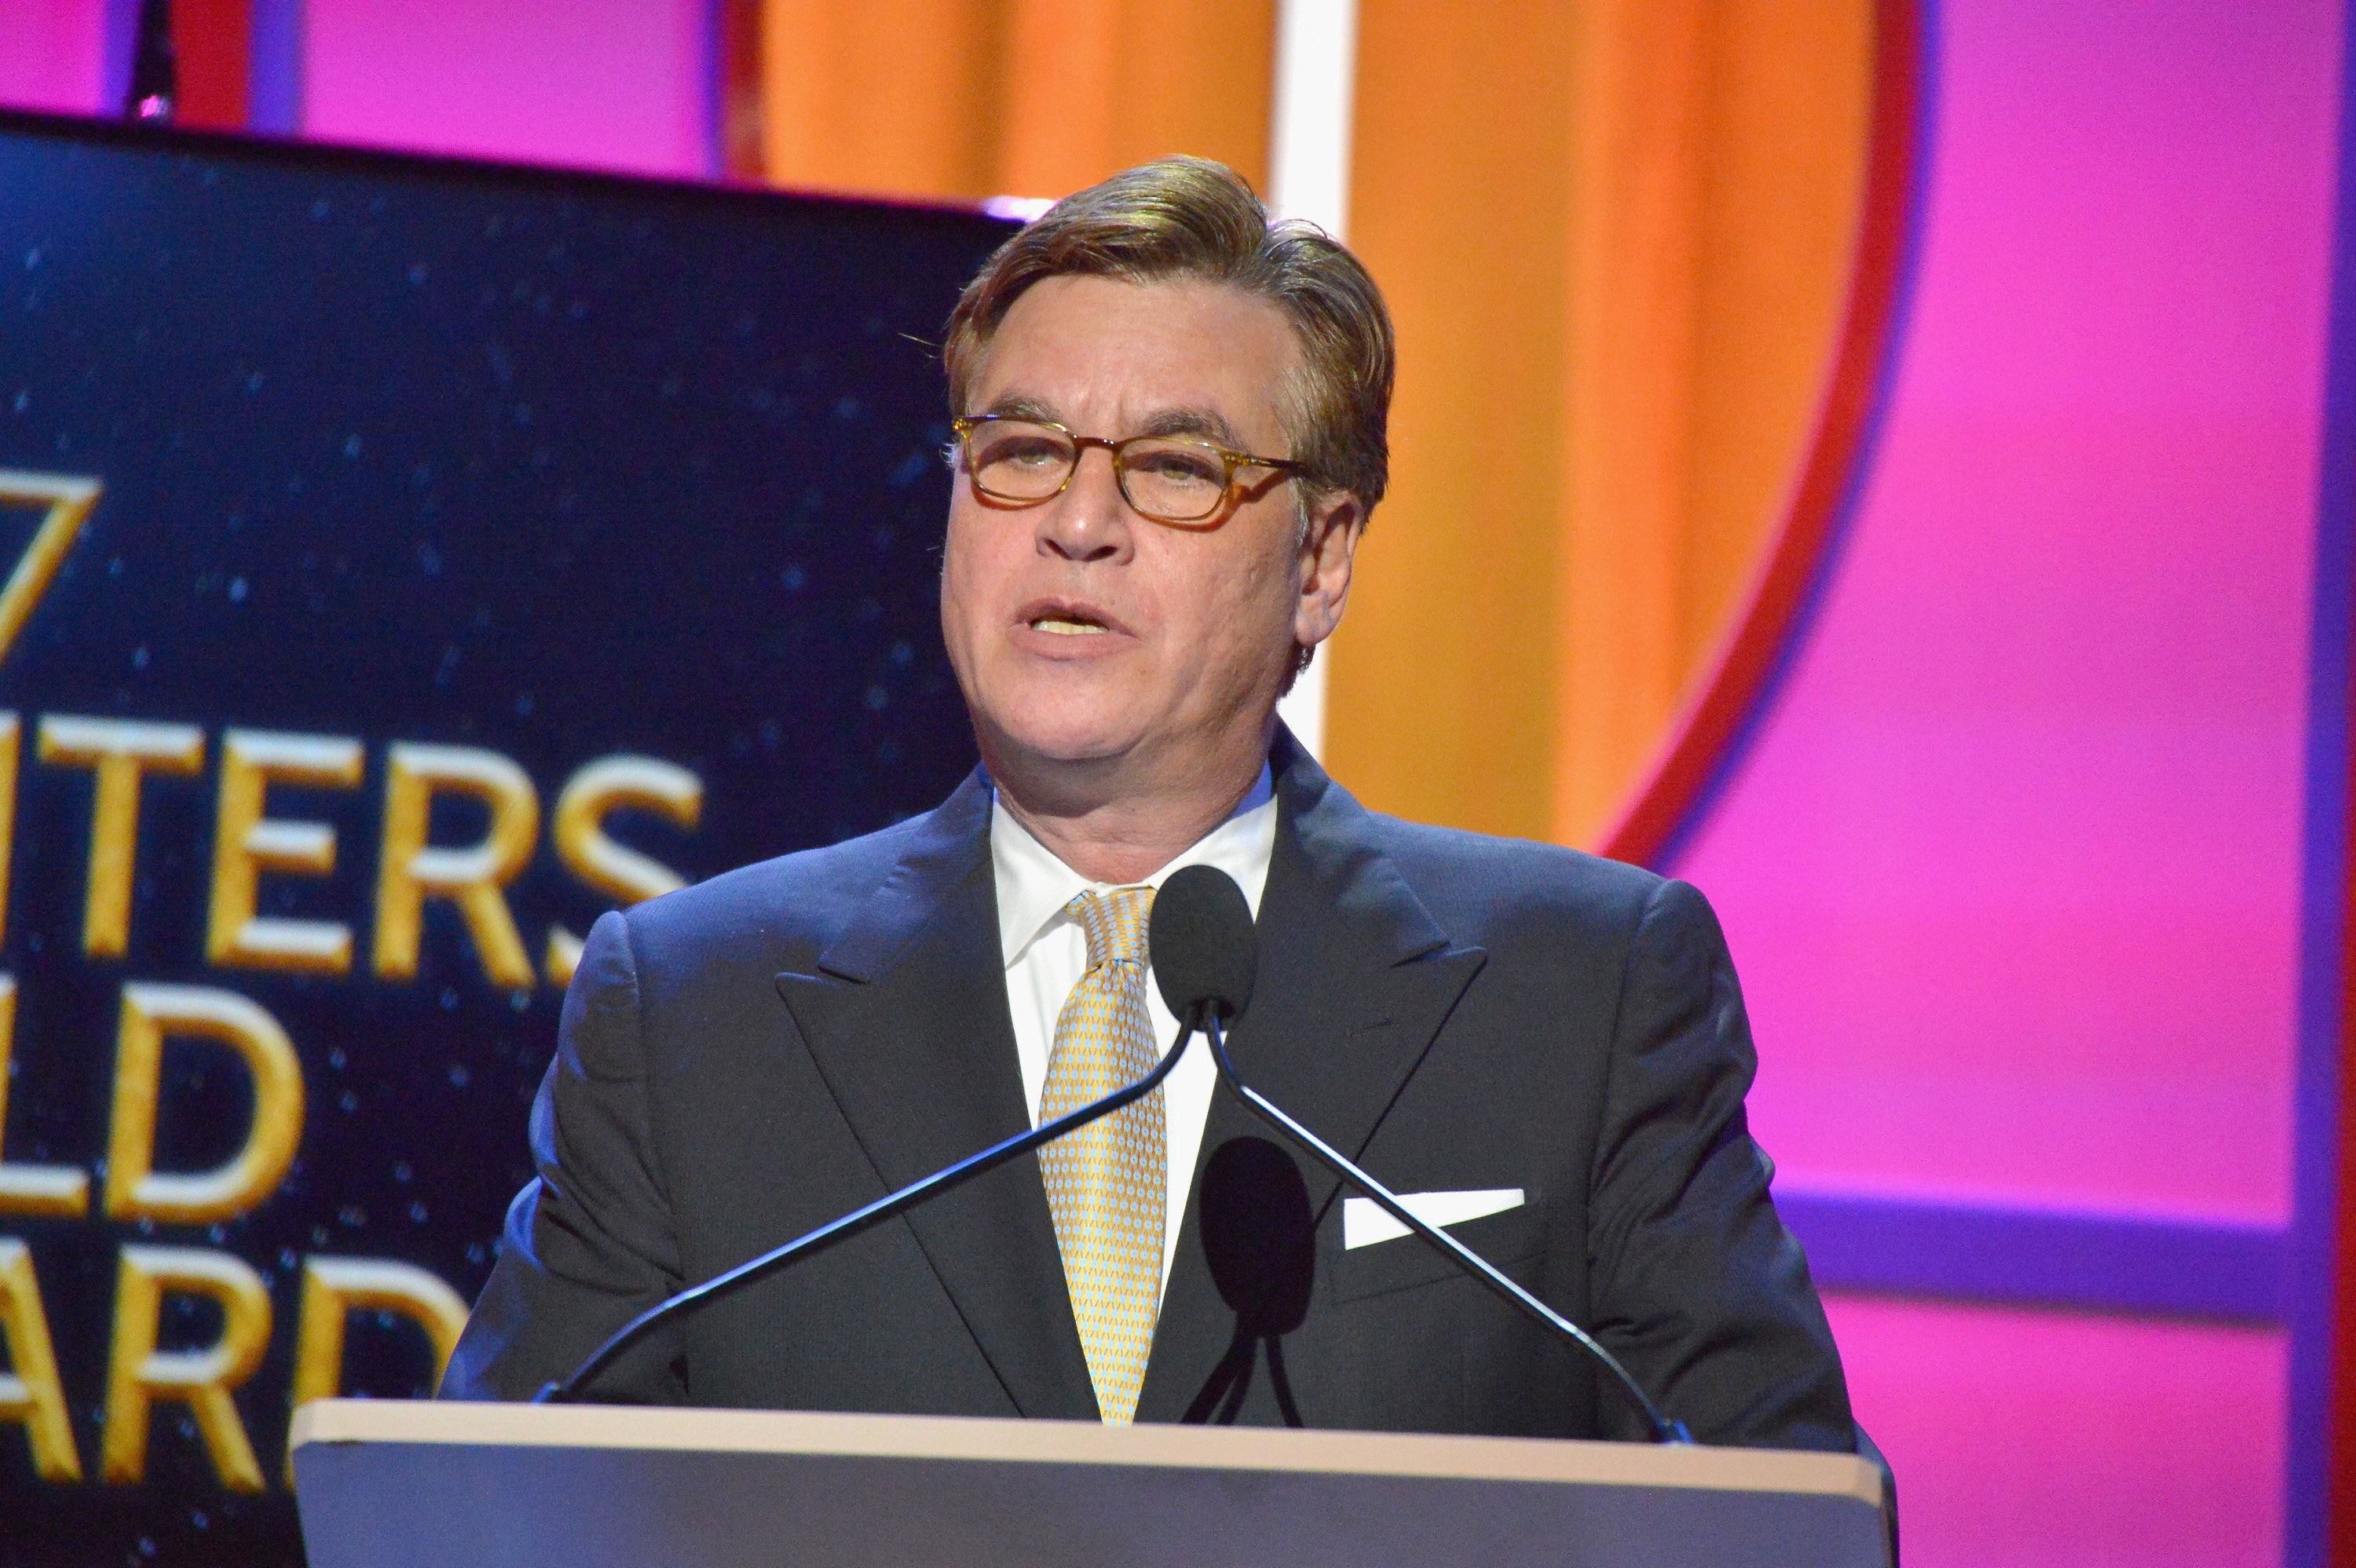 Aaron Sorkin somehow missed the conversation about Hollywood diversity.